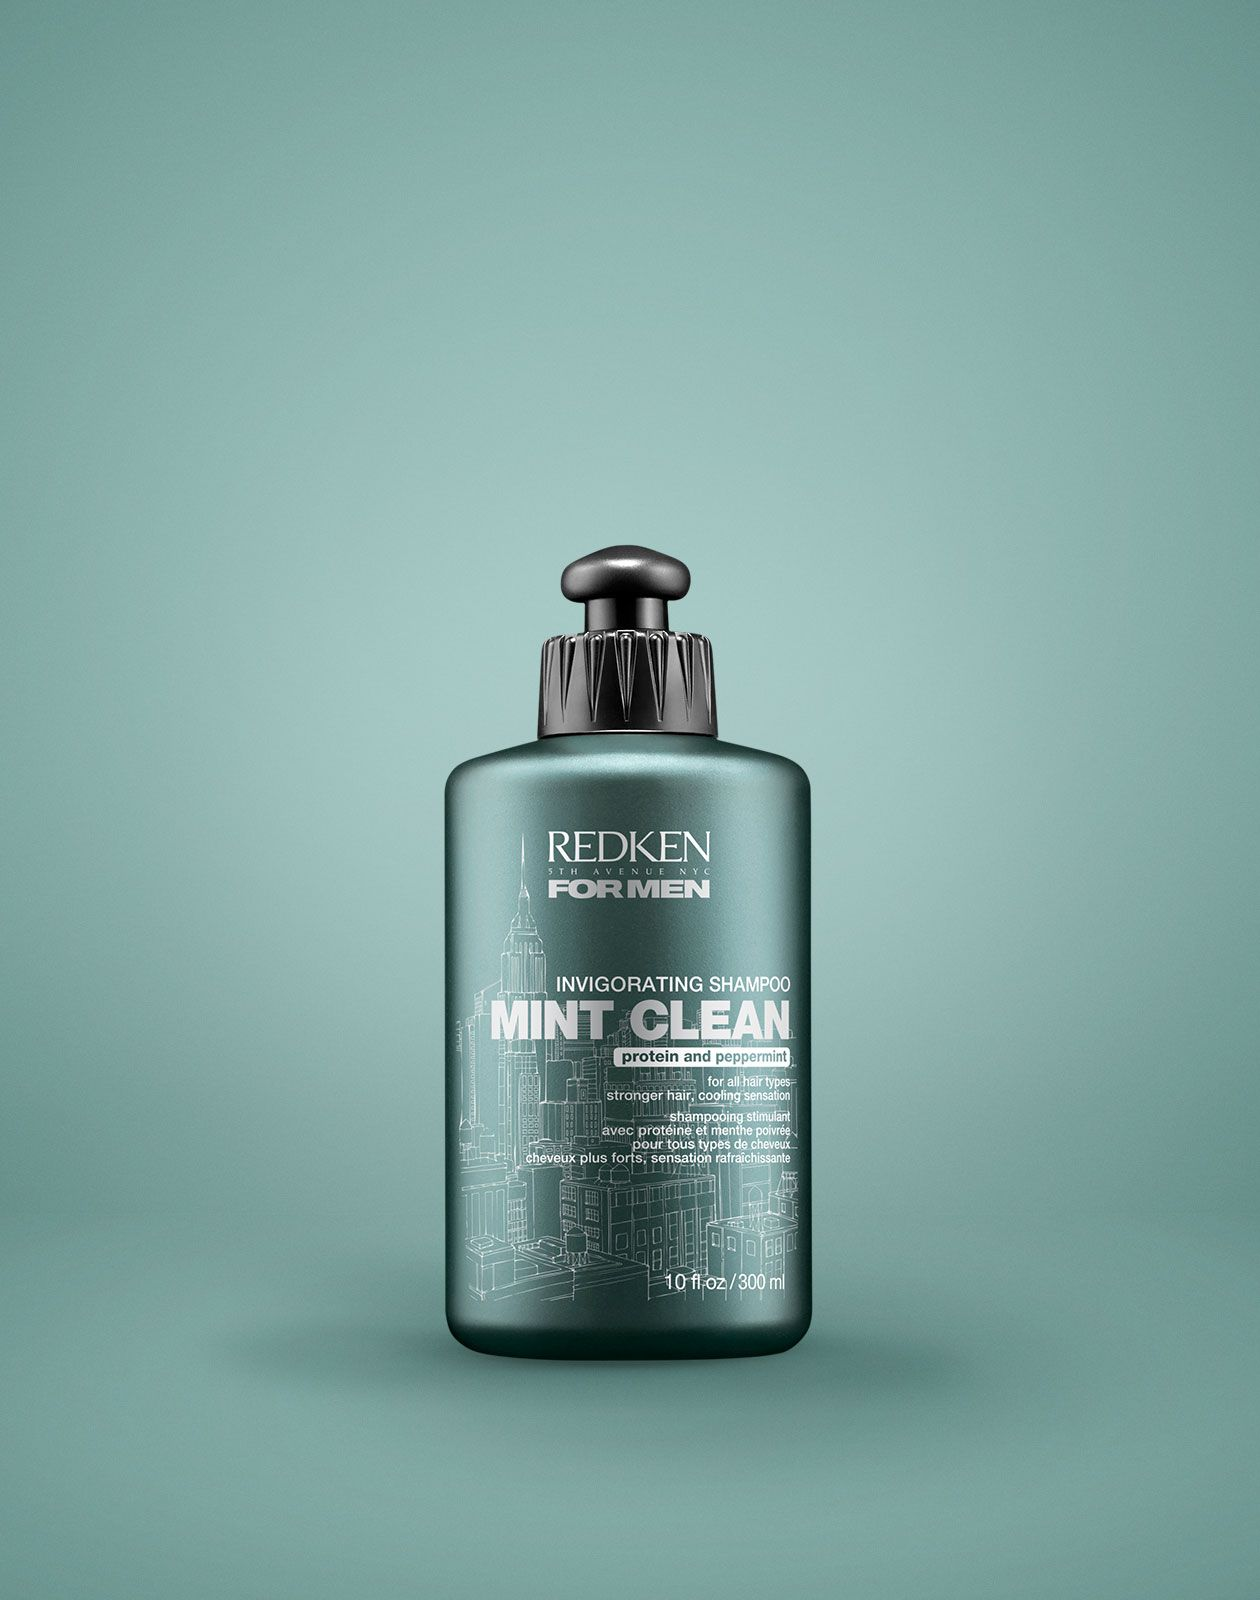 Redken for Men Mint Clean Invigorating Shampoo helps hair